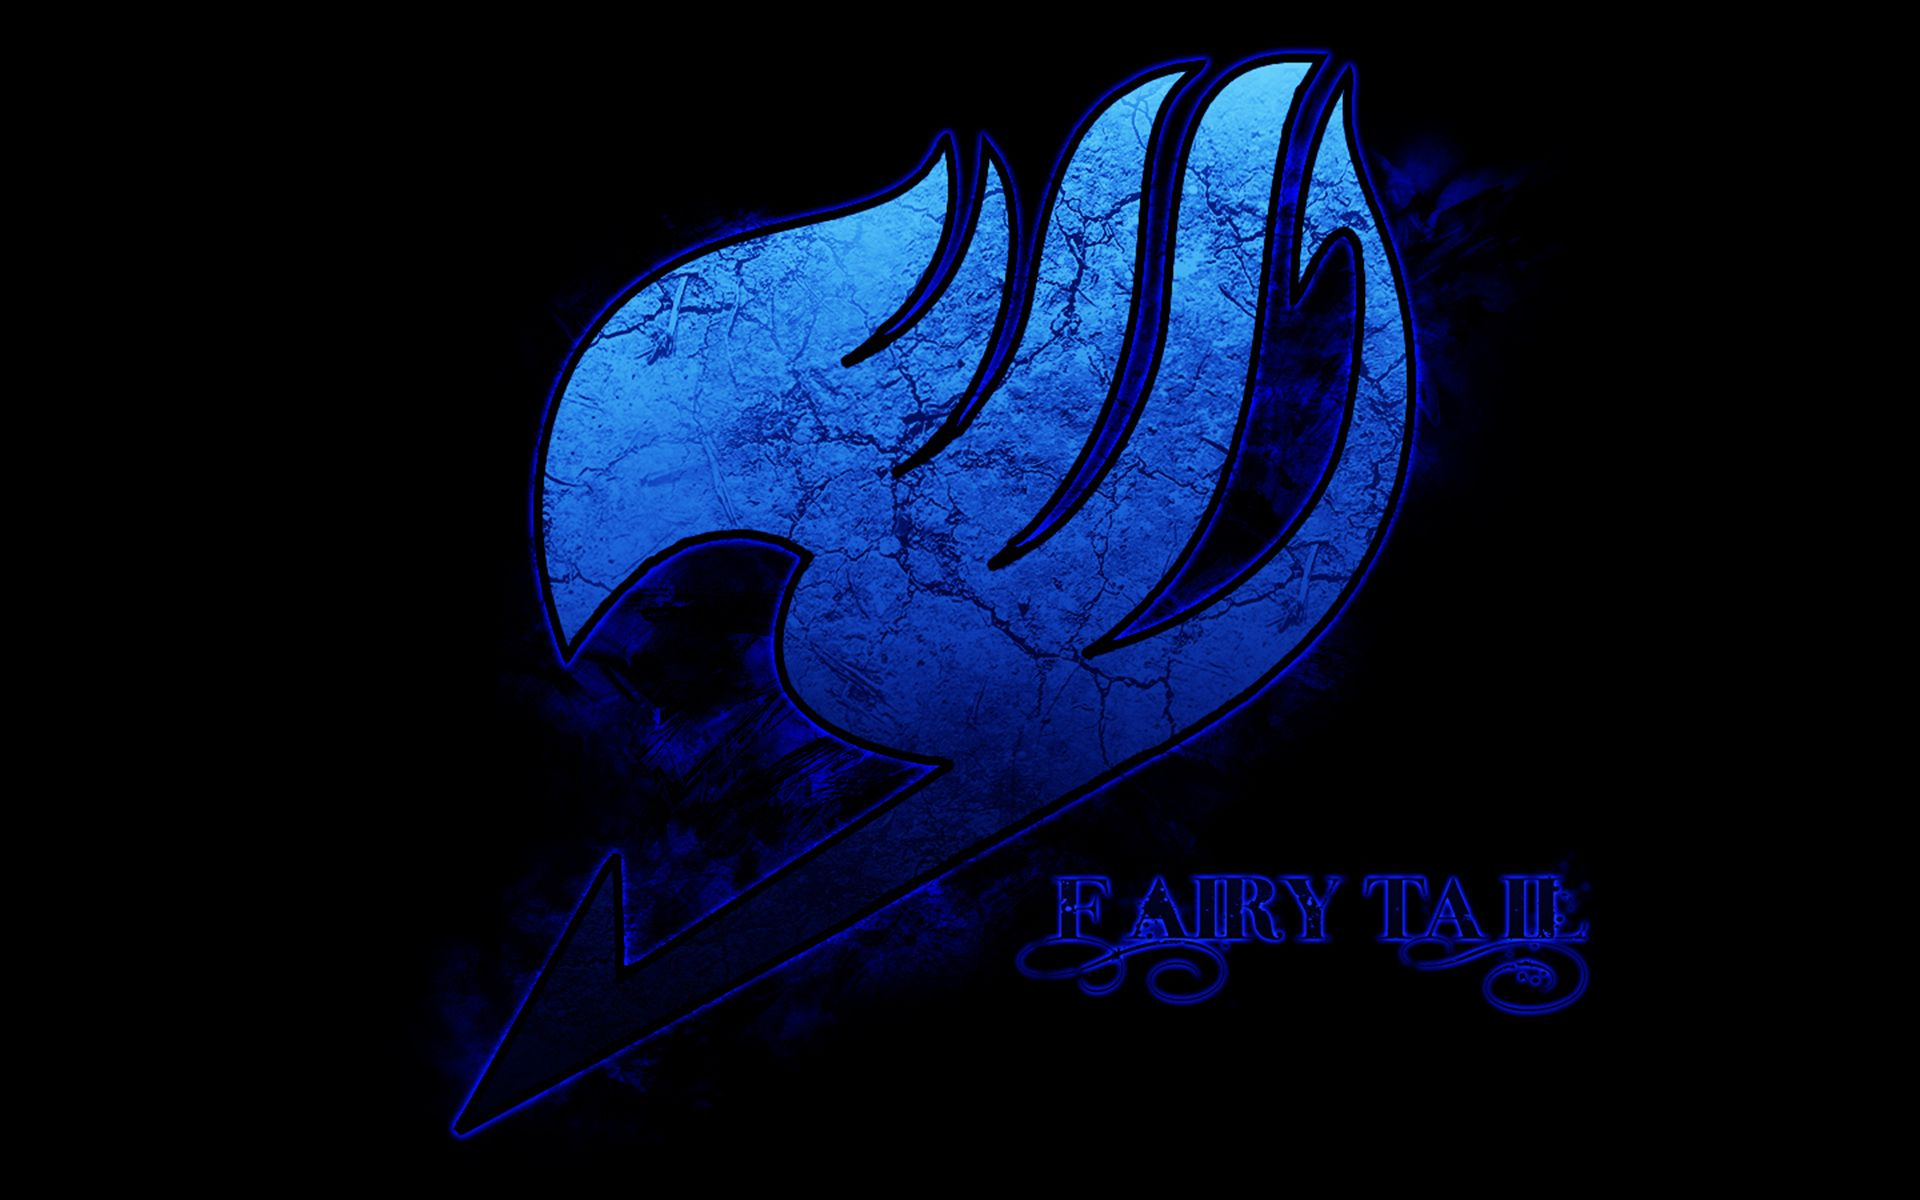 1433246 Fairy Tail wallpaper HD free wallpapers backgrounds images ...